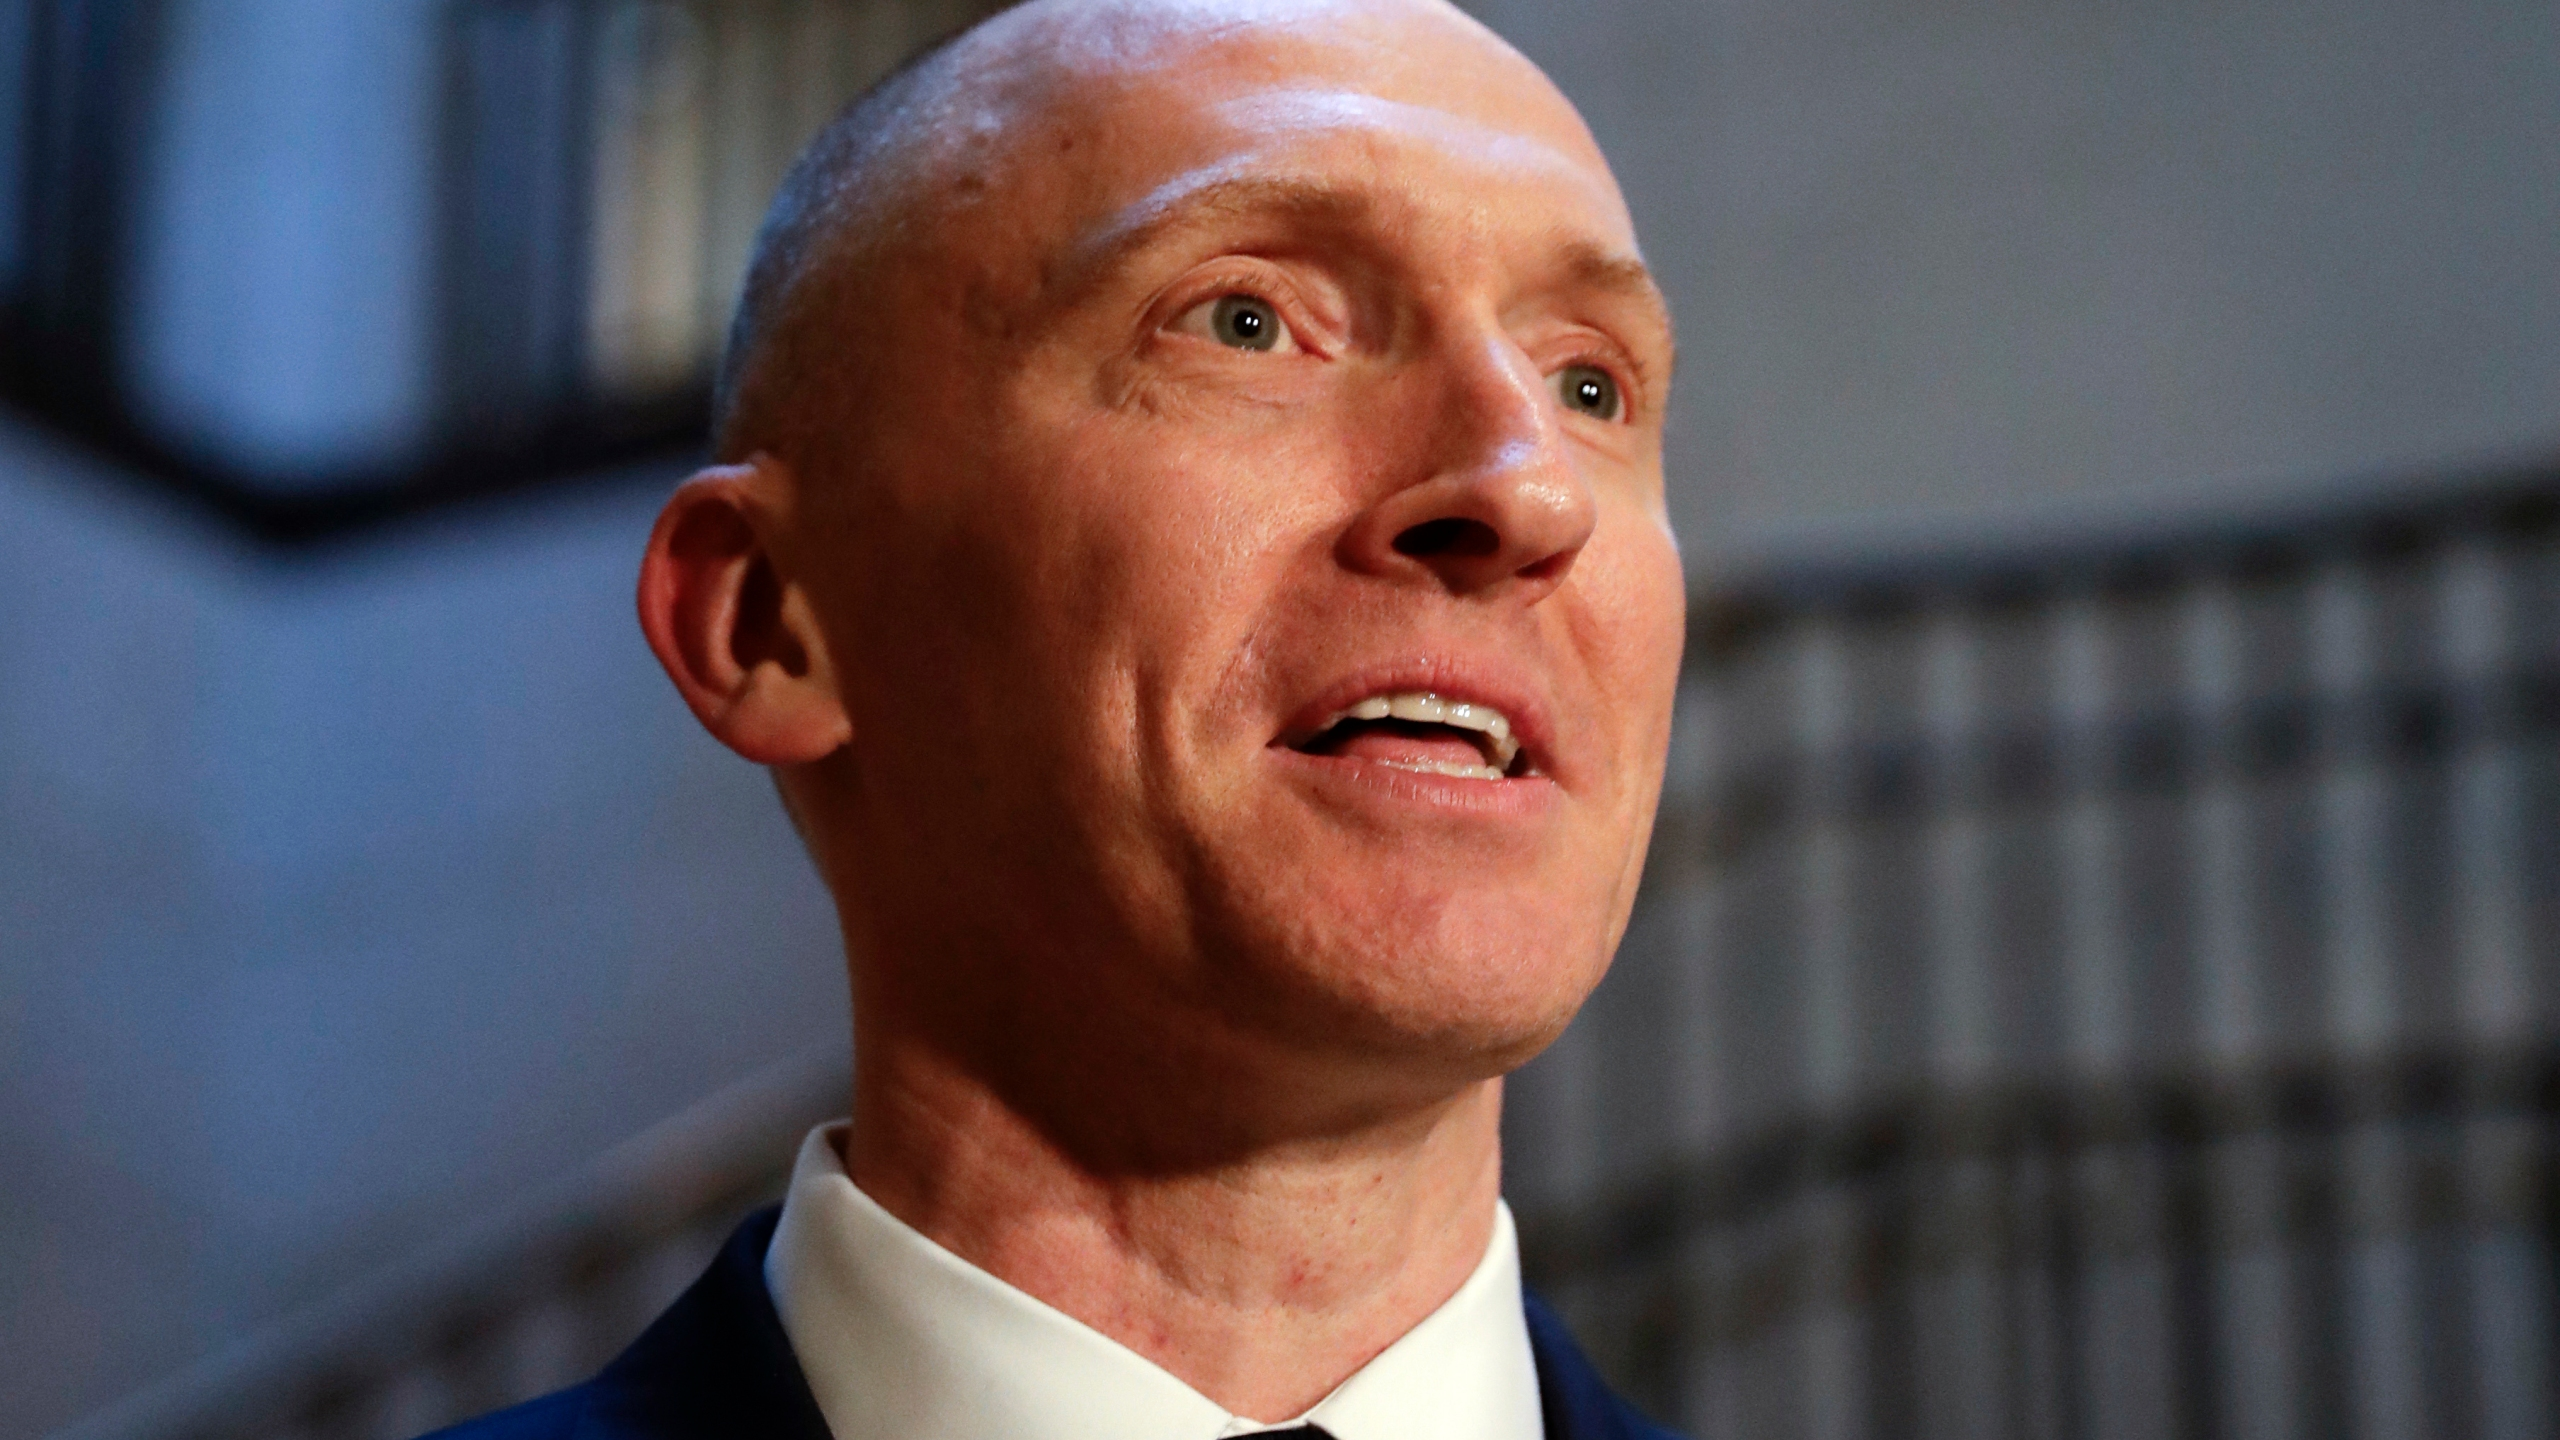 "FILE - In this Nov. 2, 2017, photo, Carter Page, a foreign policy adviser to Donald Trump's 2016 presidential campaign, speaks with reporters following a day of questions from the House Intelligence Committee, on Capitol Hill in Washington. Page, who was the target of a secret surveillance warrant during the FBI's Russia investigation says in a federal lawsuit filed Friday, Nov. 27, 2020, that he was the victim of ""unlawful spying."" The suit from Carter Page alleges a series of omissions and errors made by FBI and Justice Department officials in applications they submitted to the Foreign Intelligence Surveillance Court to eavesdrop on Page on suspicion that he was an agent of Russia.(AP Photo/J. Scott Applewhite)"